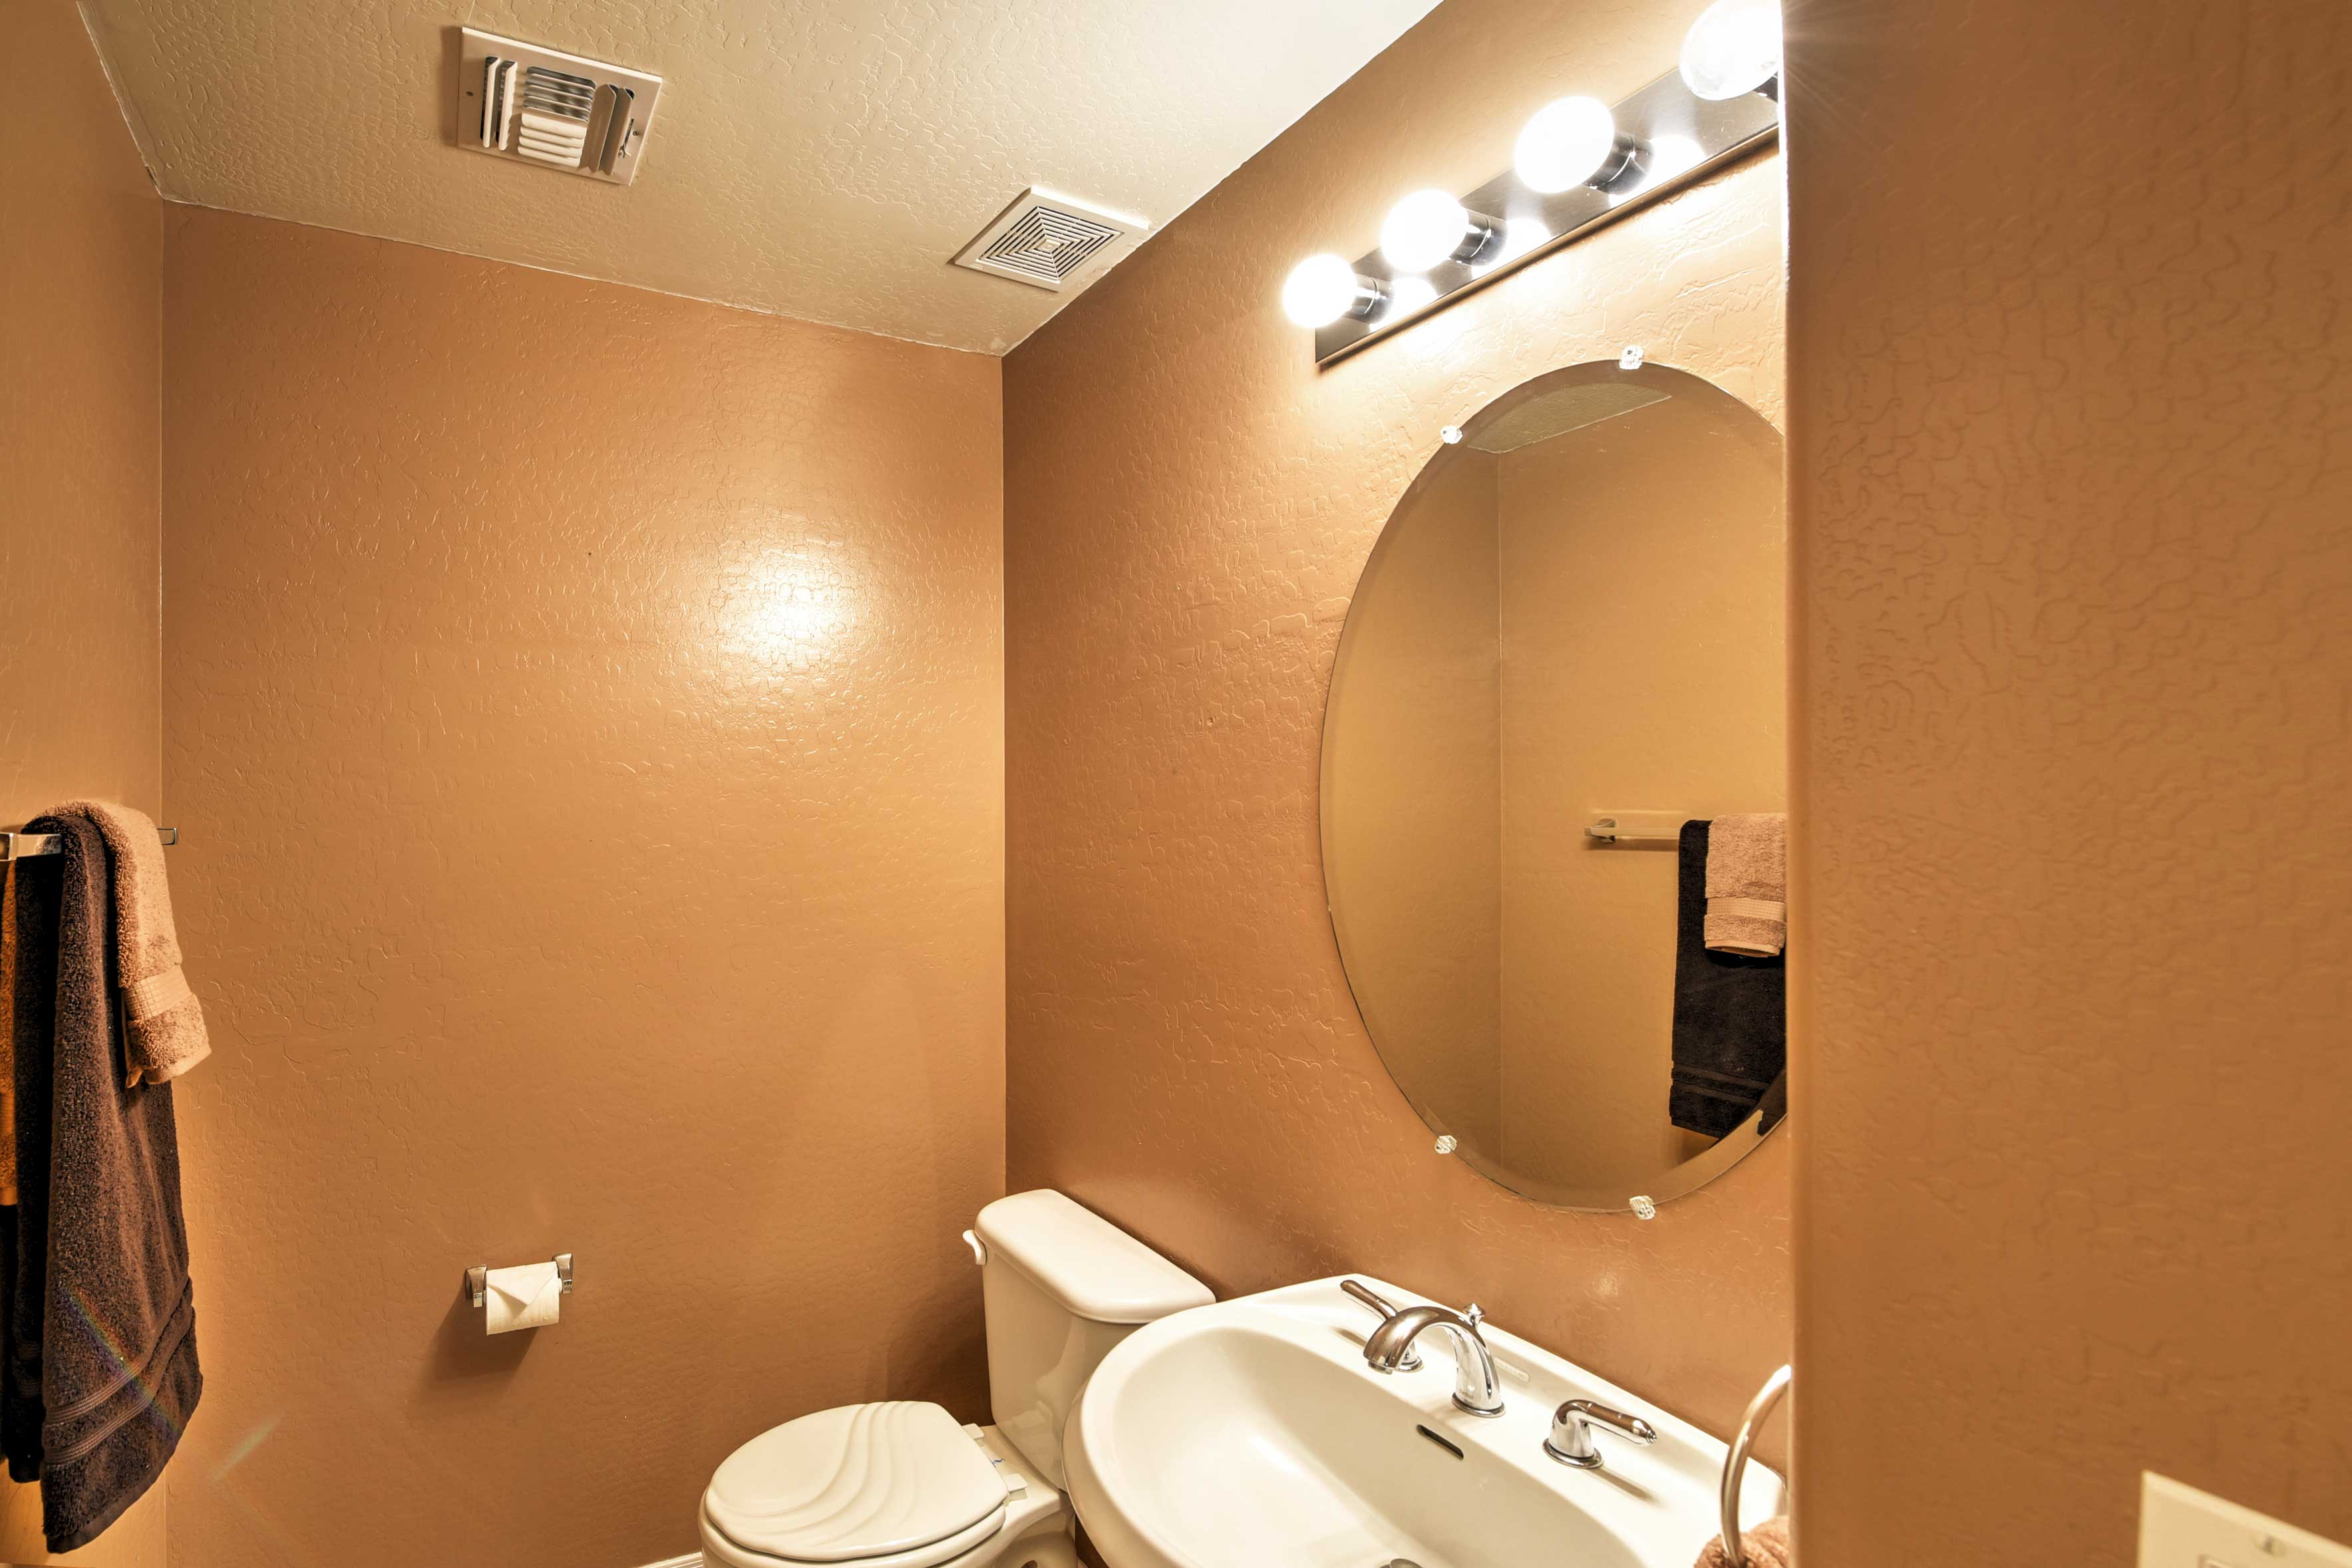 This half bathroom will come in handy for all guests!